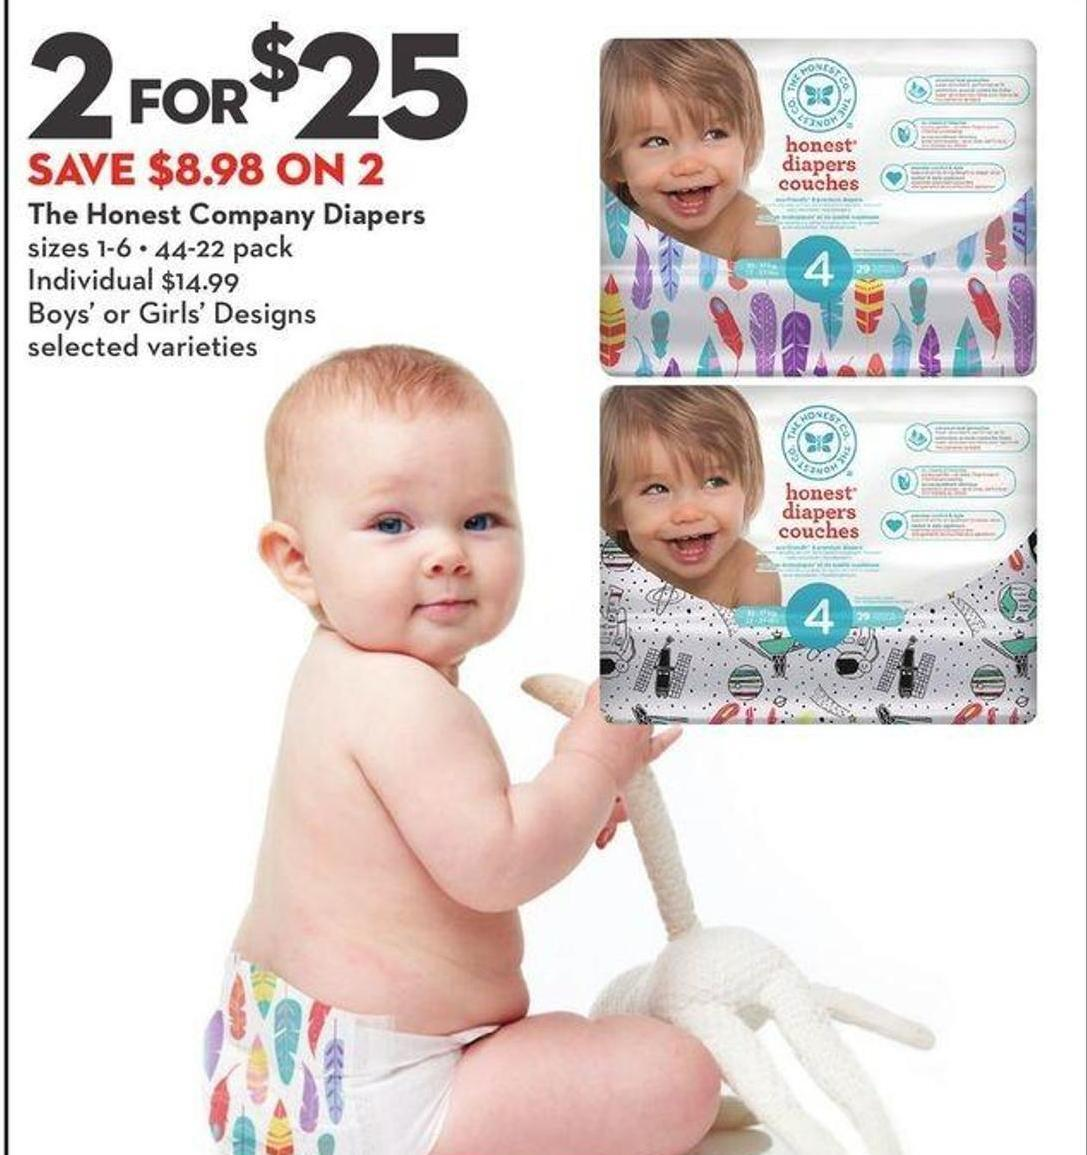 The Honest Company Diapers